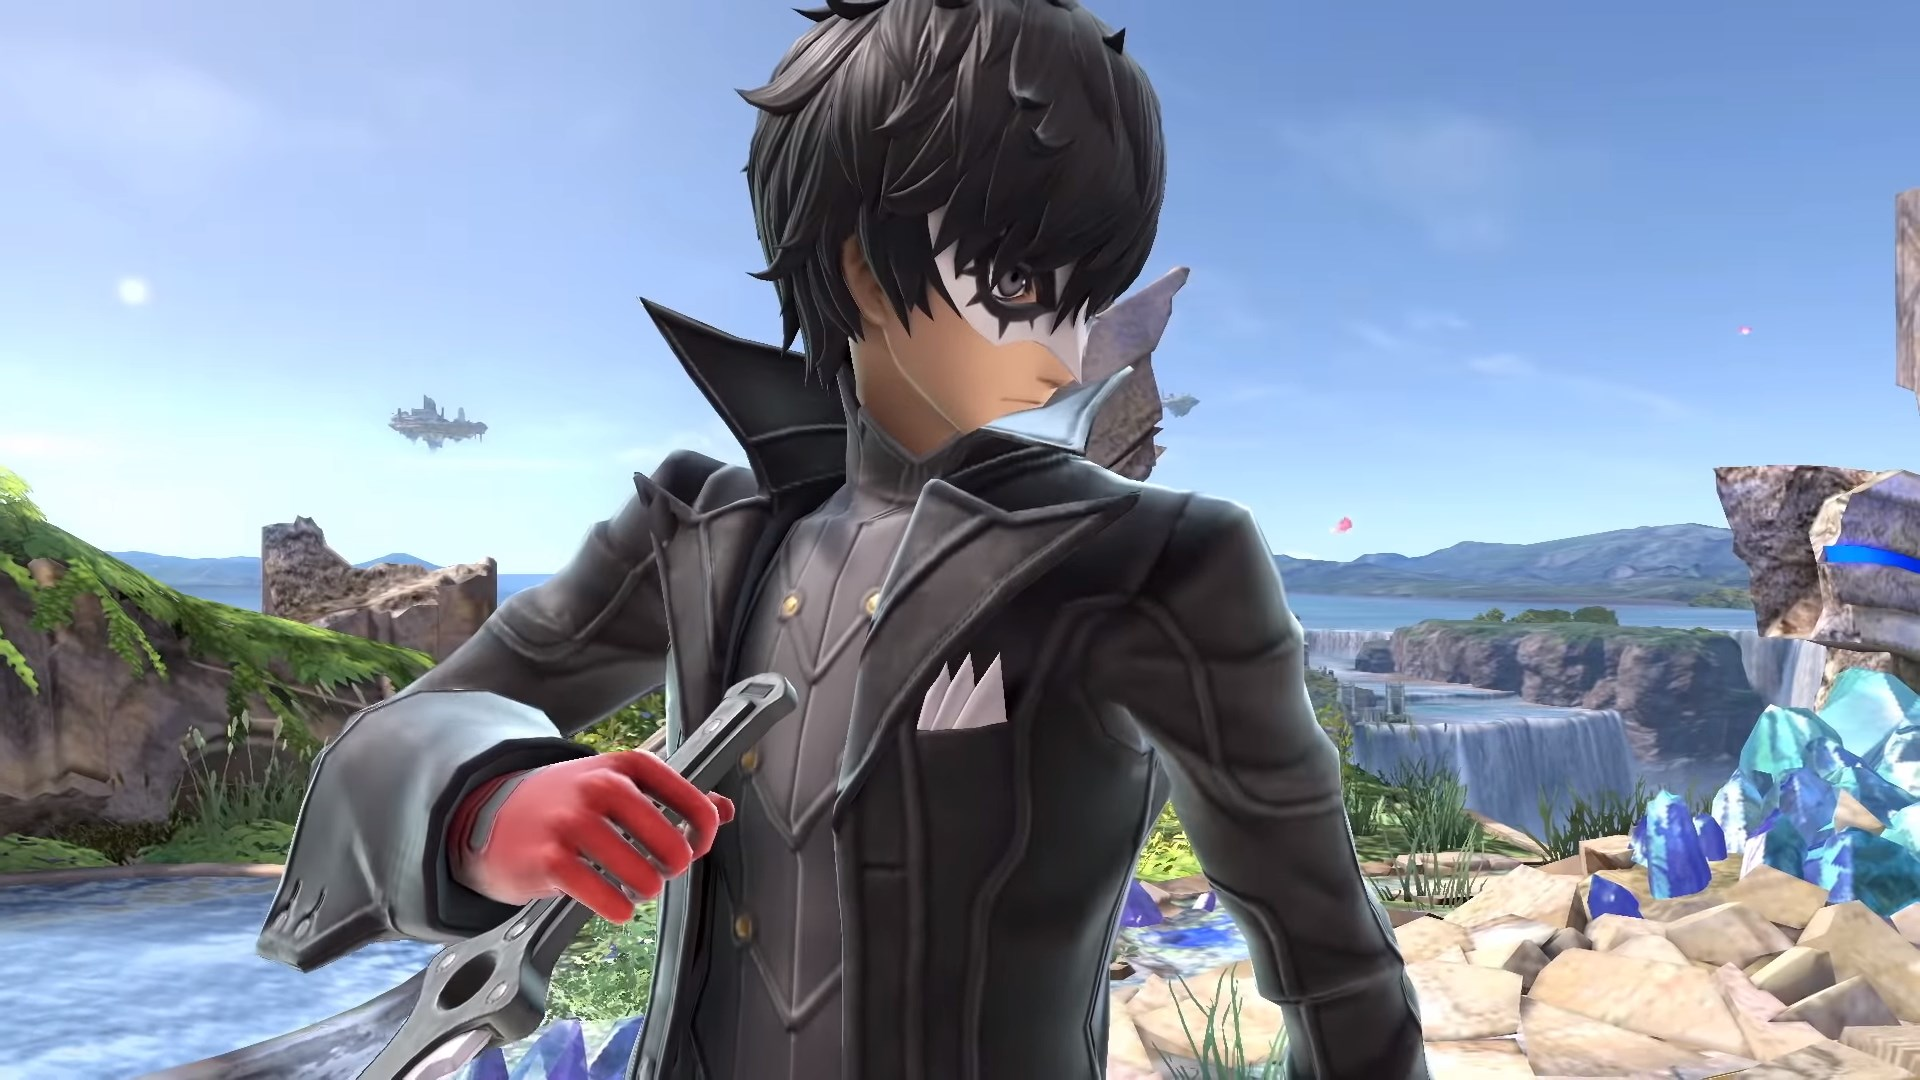 Super Smash Bros  Ultimate: Joker from Persona 5, Stage